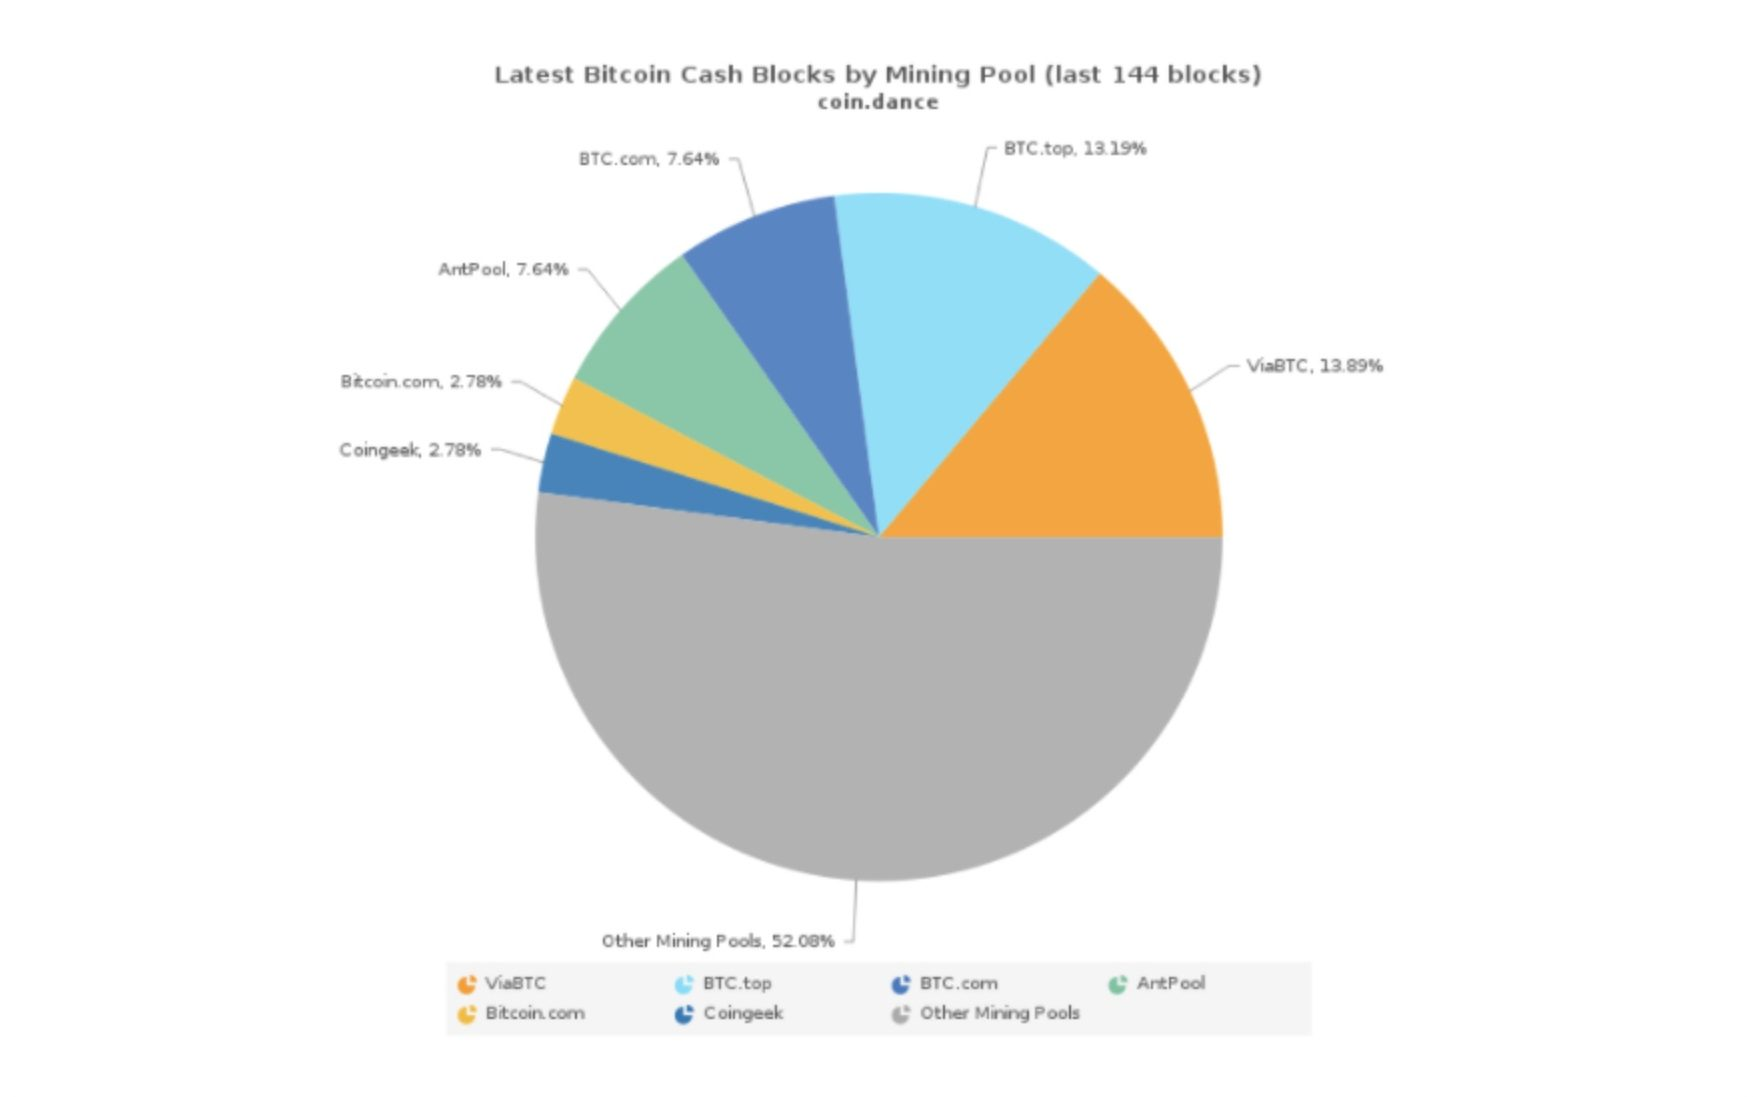 More than 50% of hashpower belongs to unknown Bitcoin cash miners